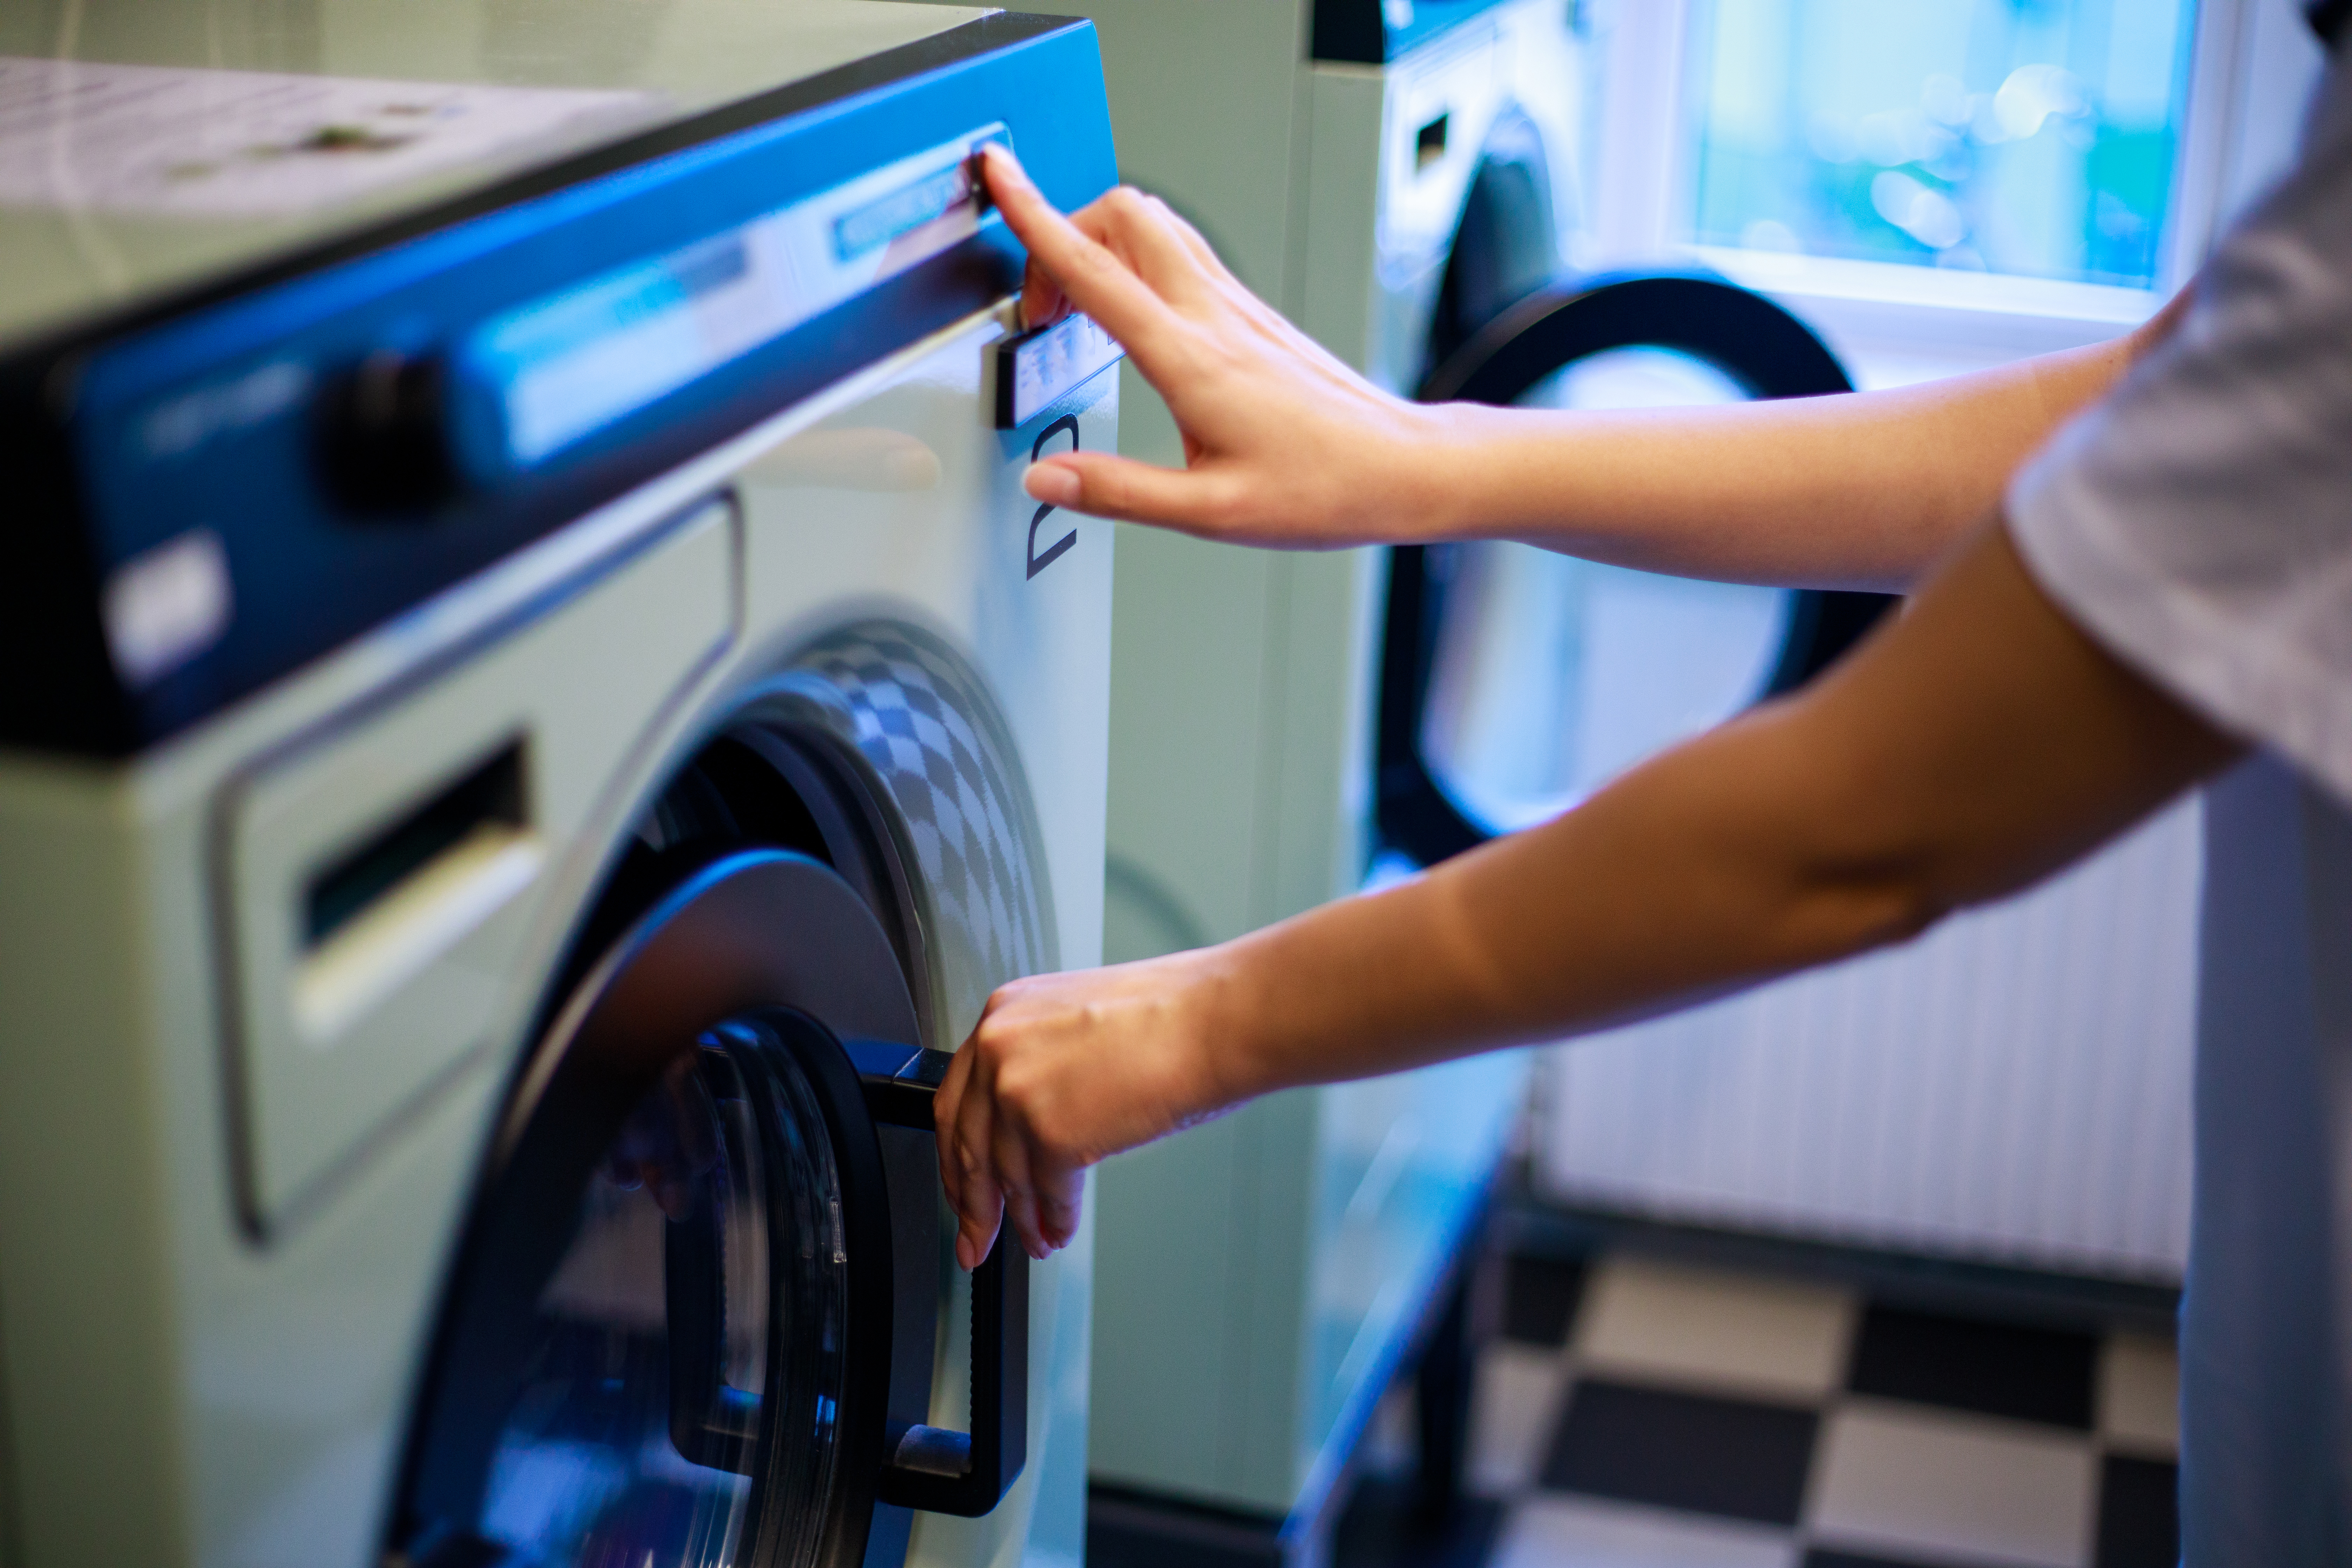 How To Fix An Lg Washing Machine With Le Code Home Guides Sf Gate Maytag Dryer Belt Diagram As Well Ge Replacement